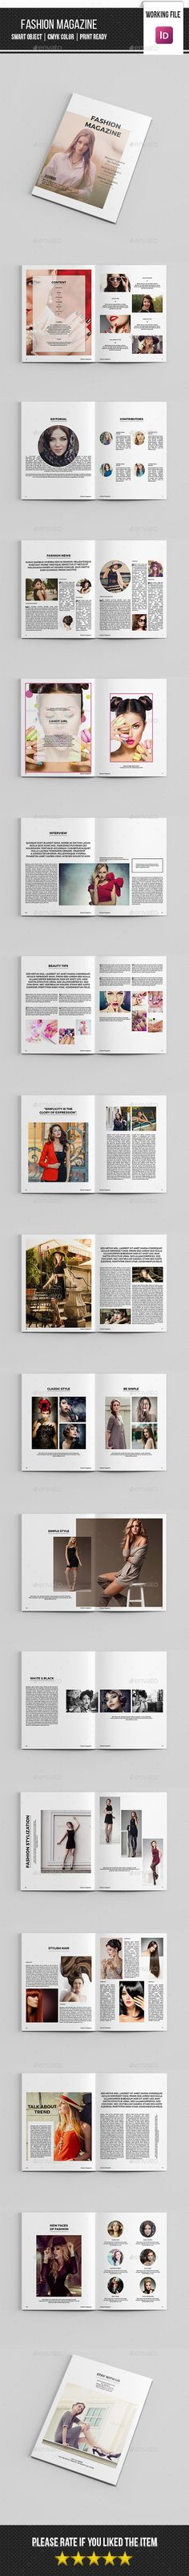 Fashion Magazine Template InDesign INDD. Download here: http://graphicriver.net/item/fashion-magazine-templatev16/15860108?ref=ksioks